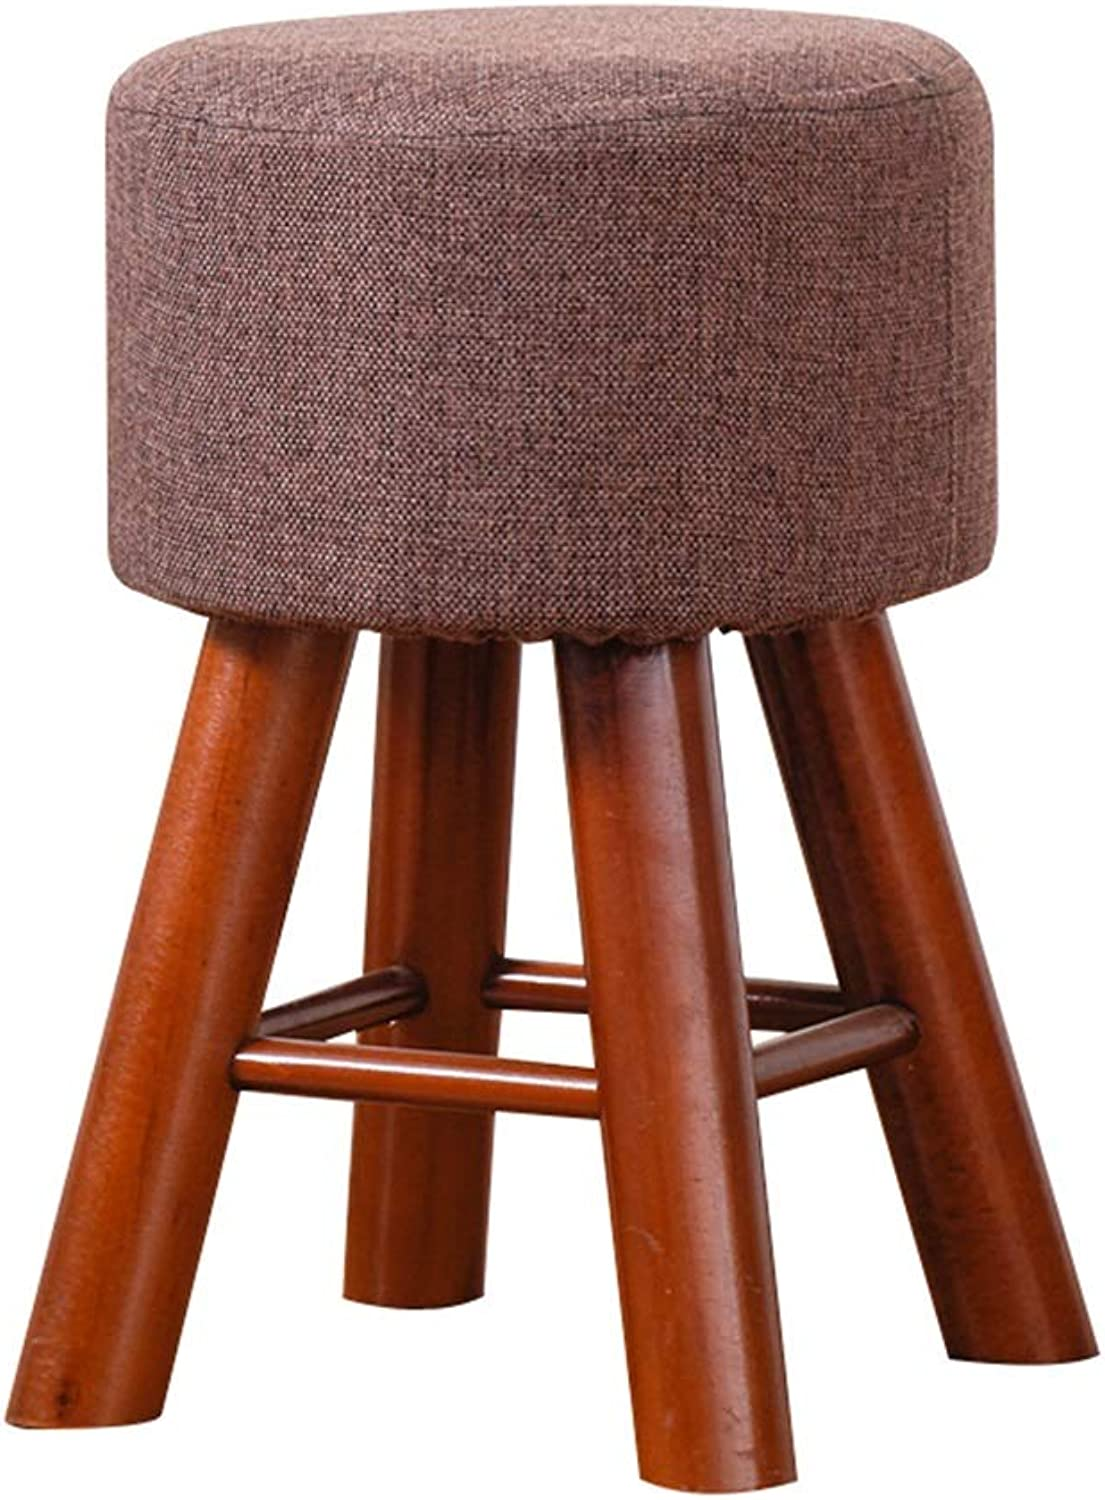 AGLZWY Sofa Stool Multipurpose Solid Wood Frame Cloth Breathable Non-Slip Portable Round Simplicity Living Room Change shoes Bench Makeup Low, Brown, White, Wood color